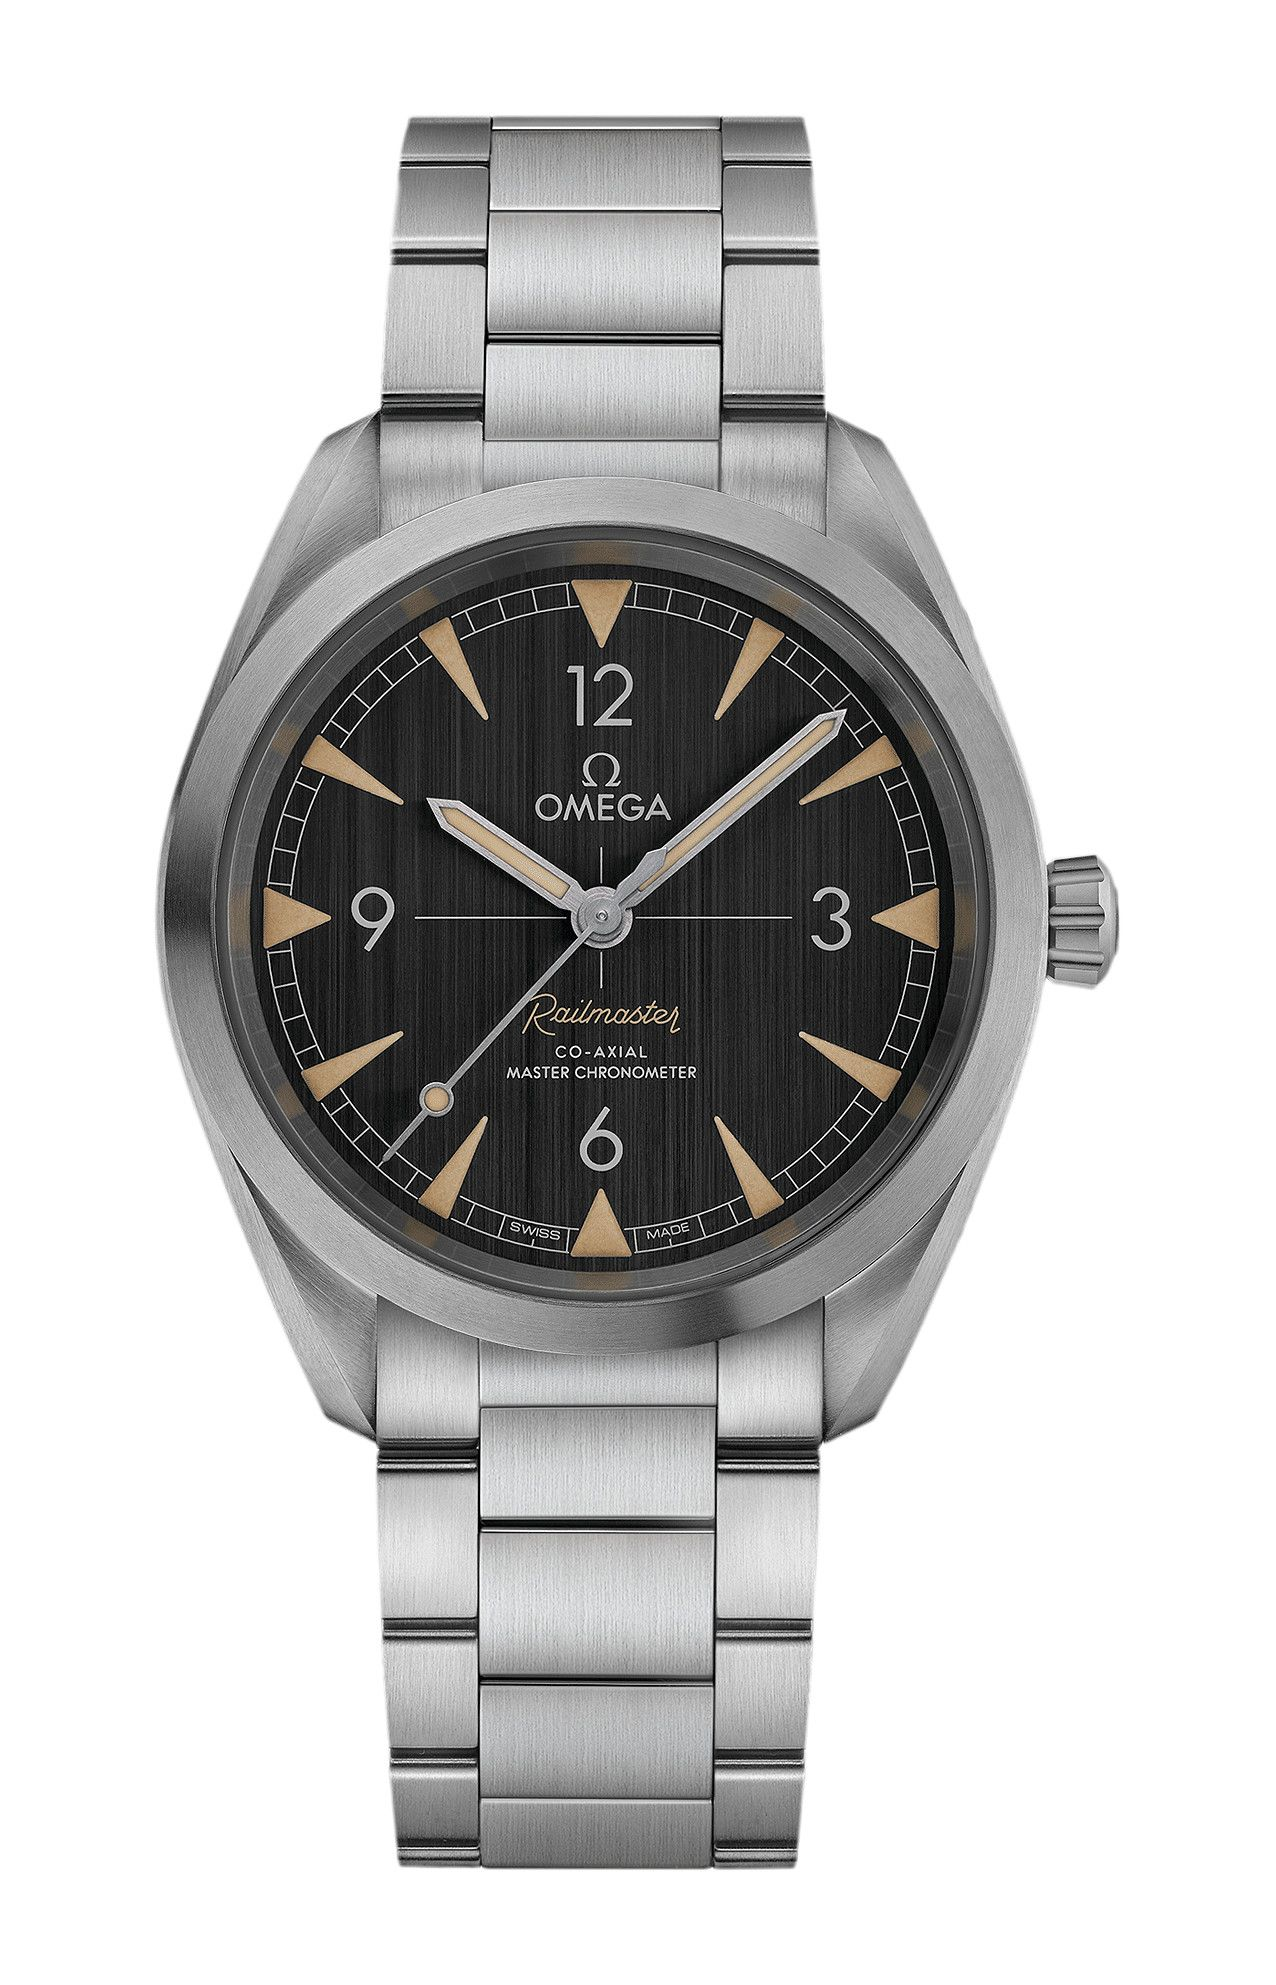 SEAMASTER RAILMASTER OMEGA CO-AXIAL MASTER CHRONOMETER 40 MM - 220.10.40.20.01.001